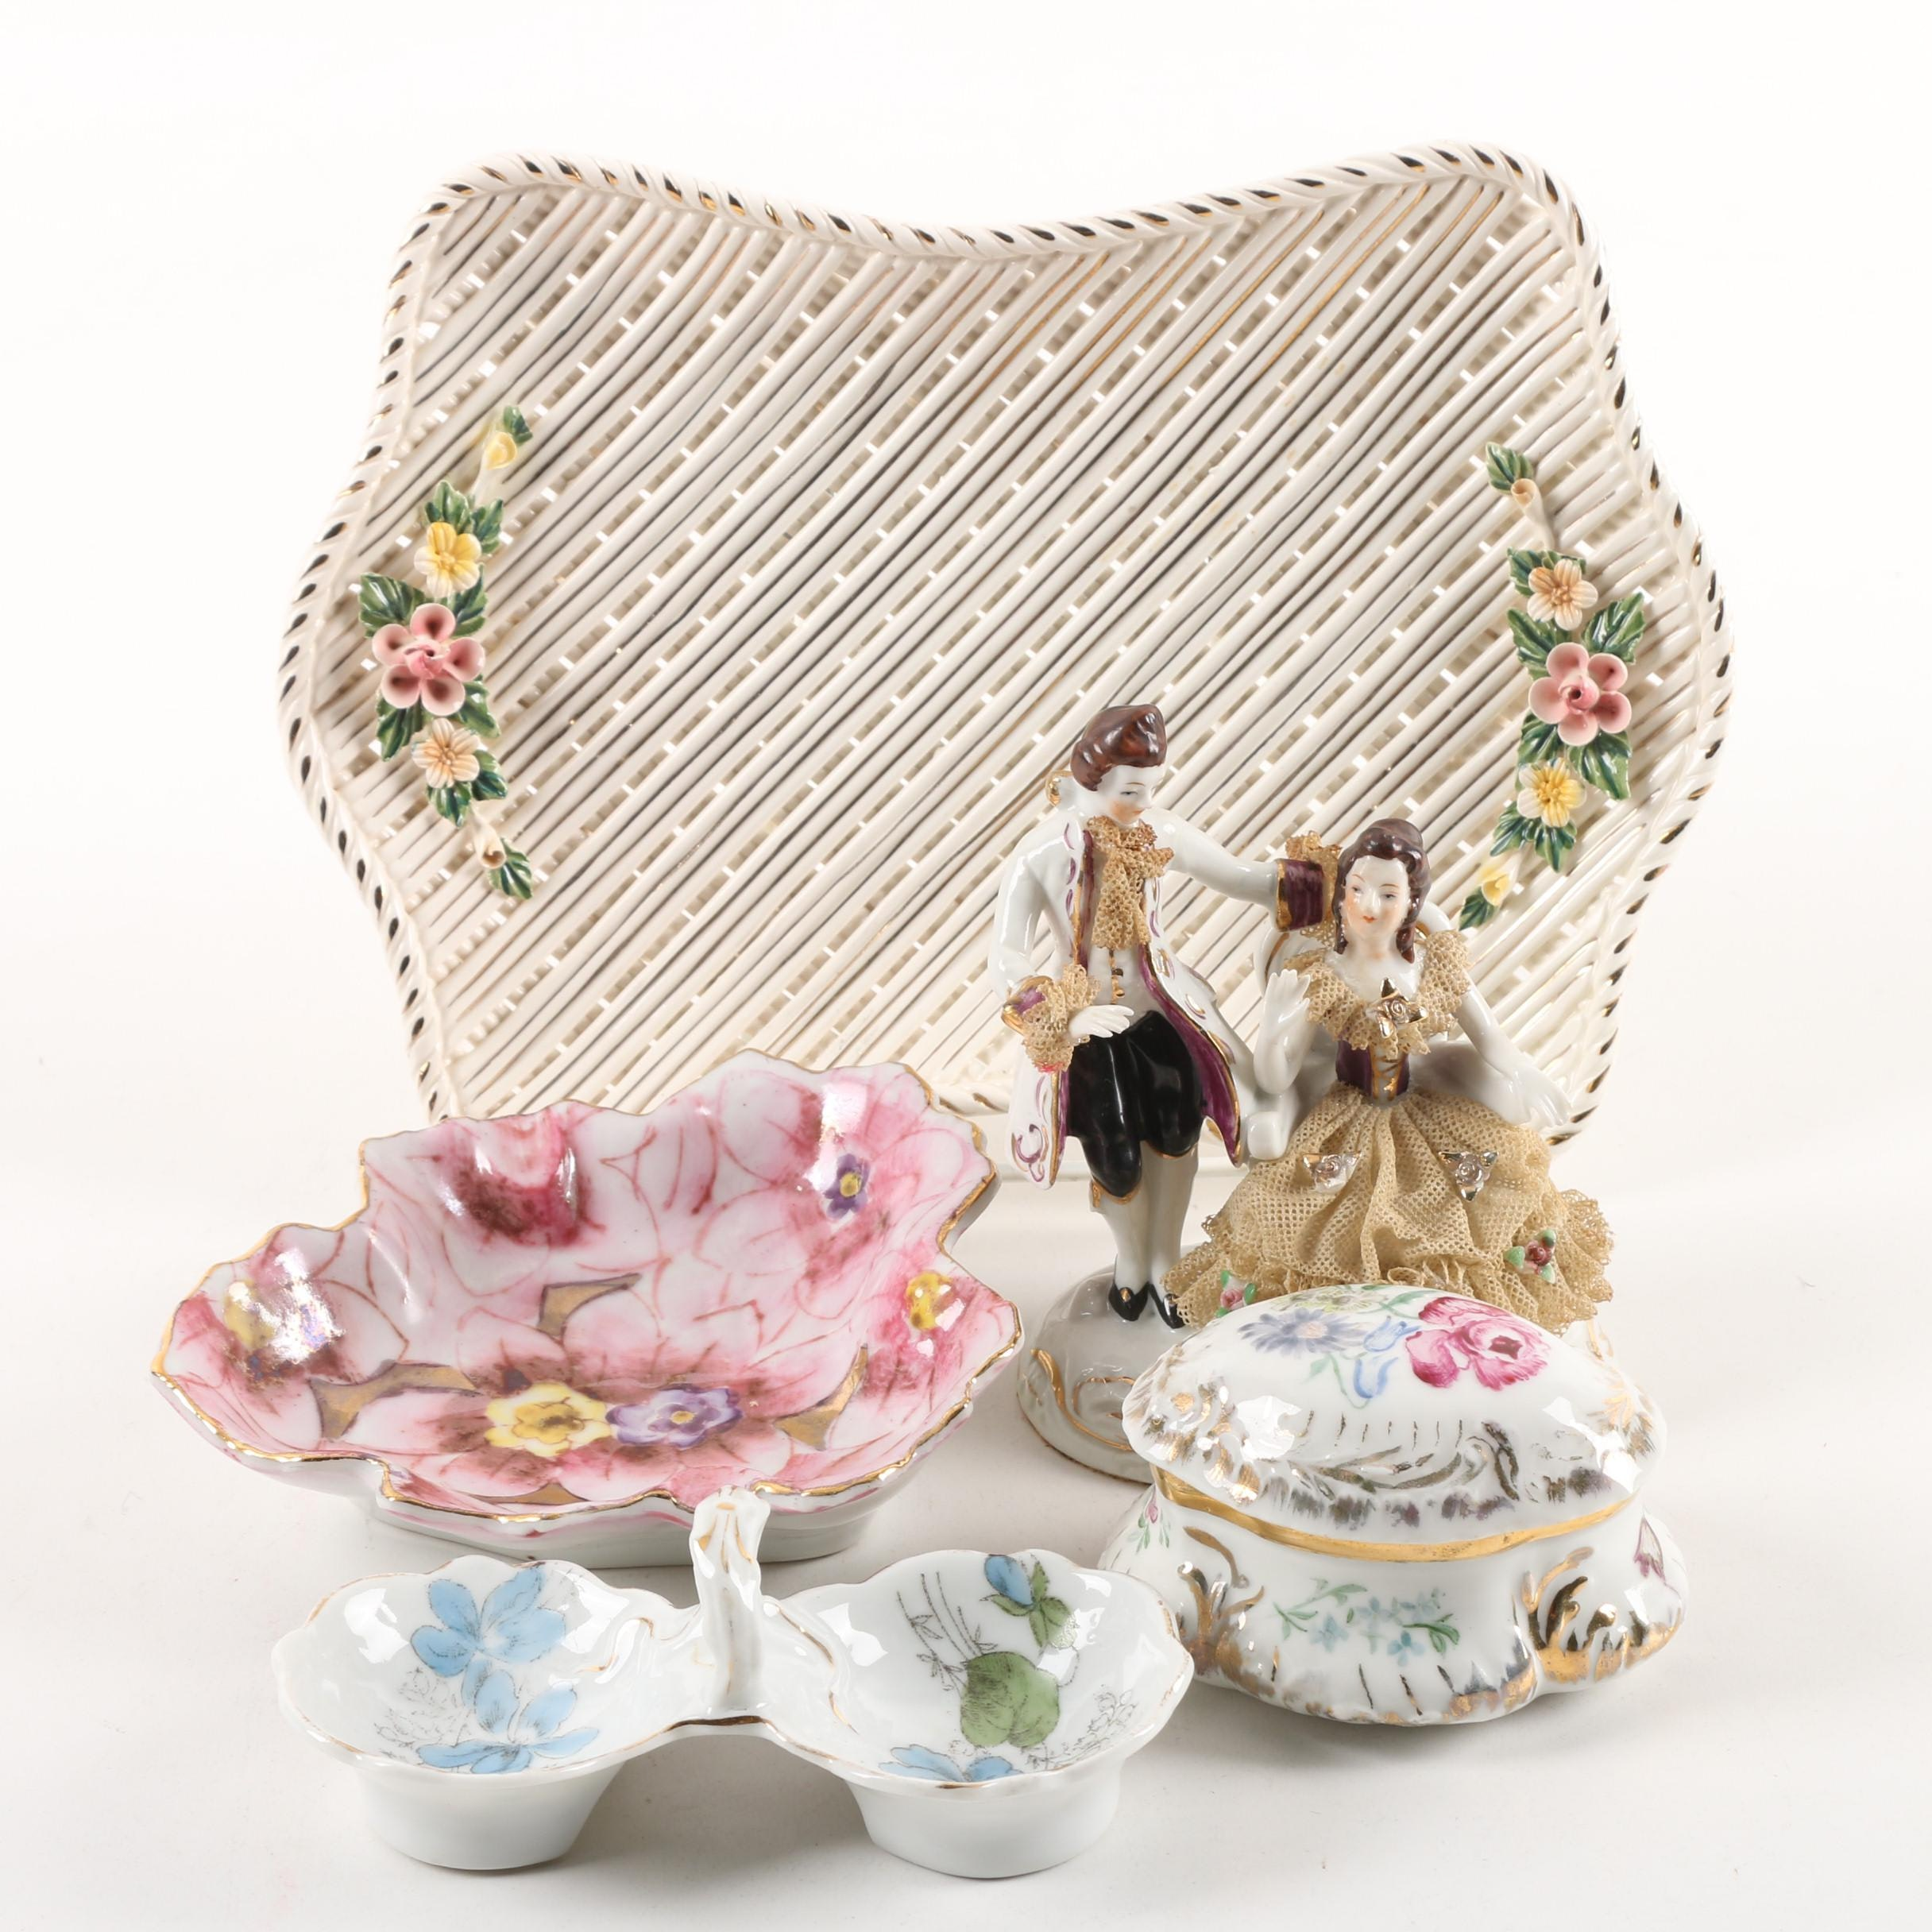 Vintage Dresden Lace Figurine, Porcelain Trays, and Lidded Trinket Box